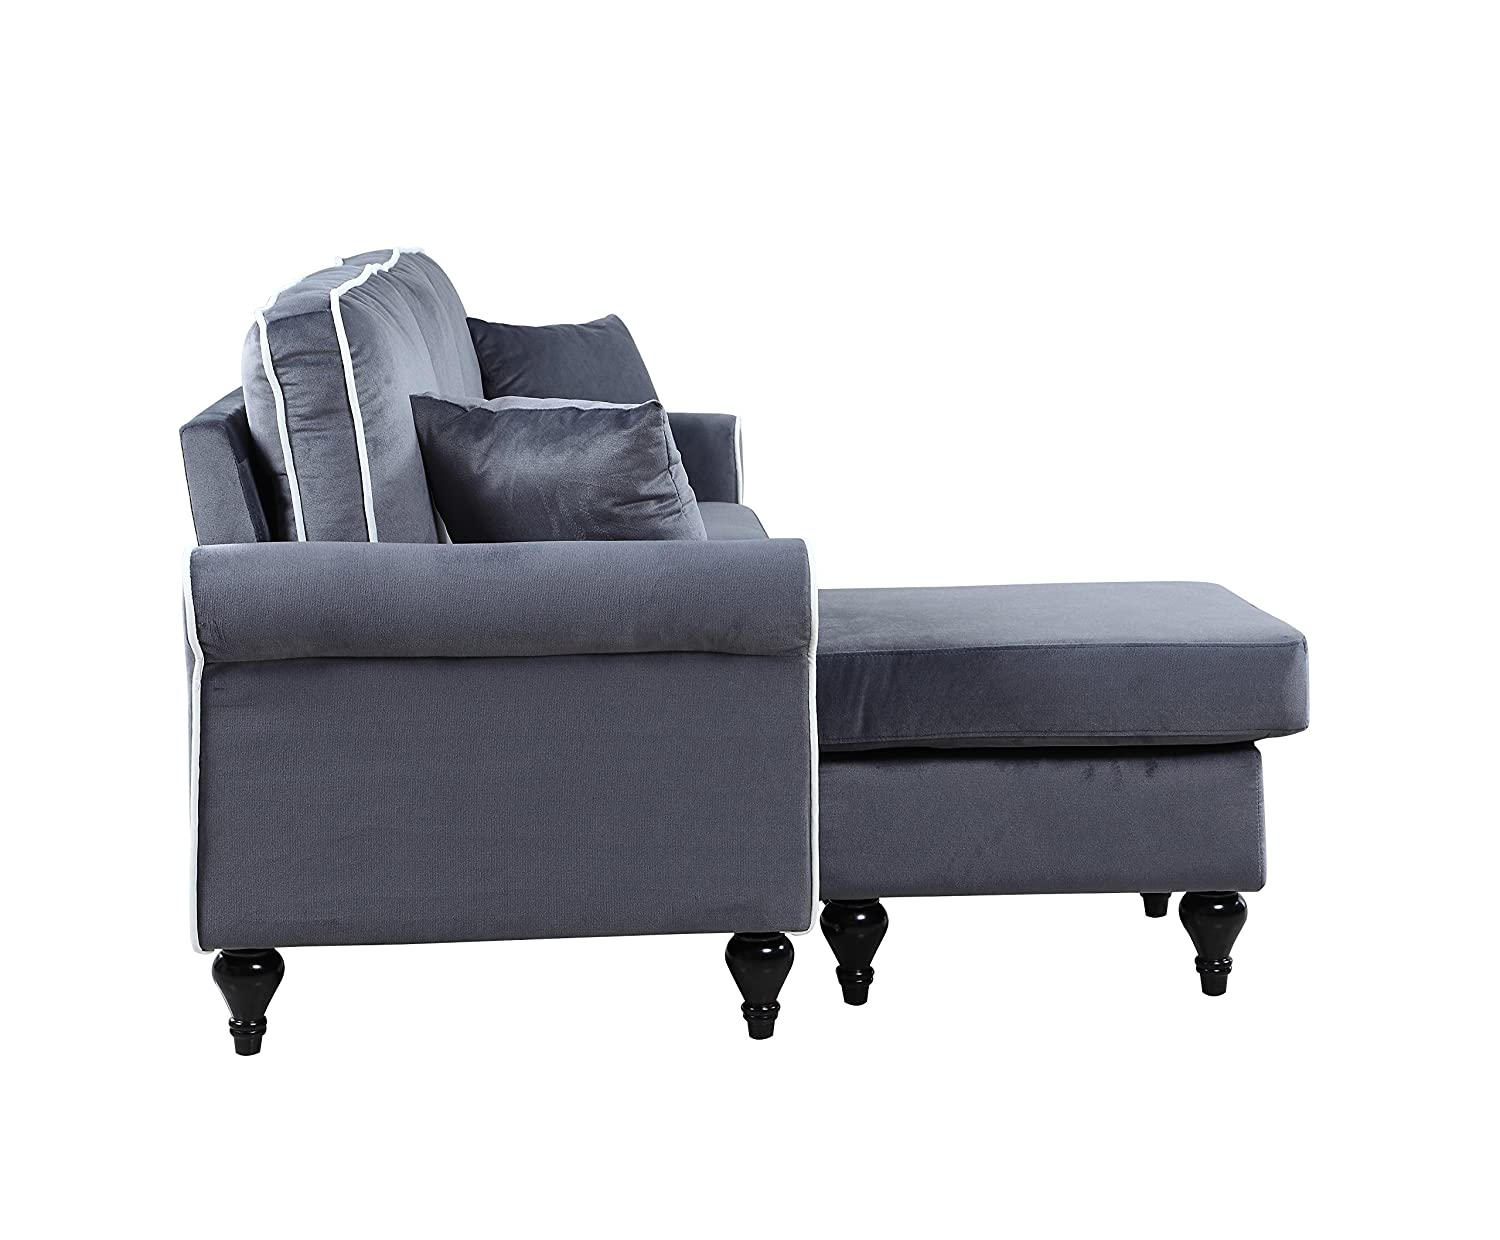 Recamiere chaiselongue  Amazon.com: Classic and Traditional Small Space Velvet Sectional ...